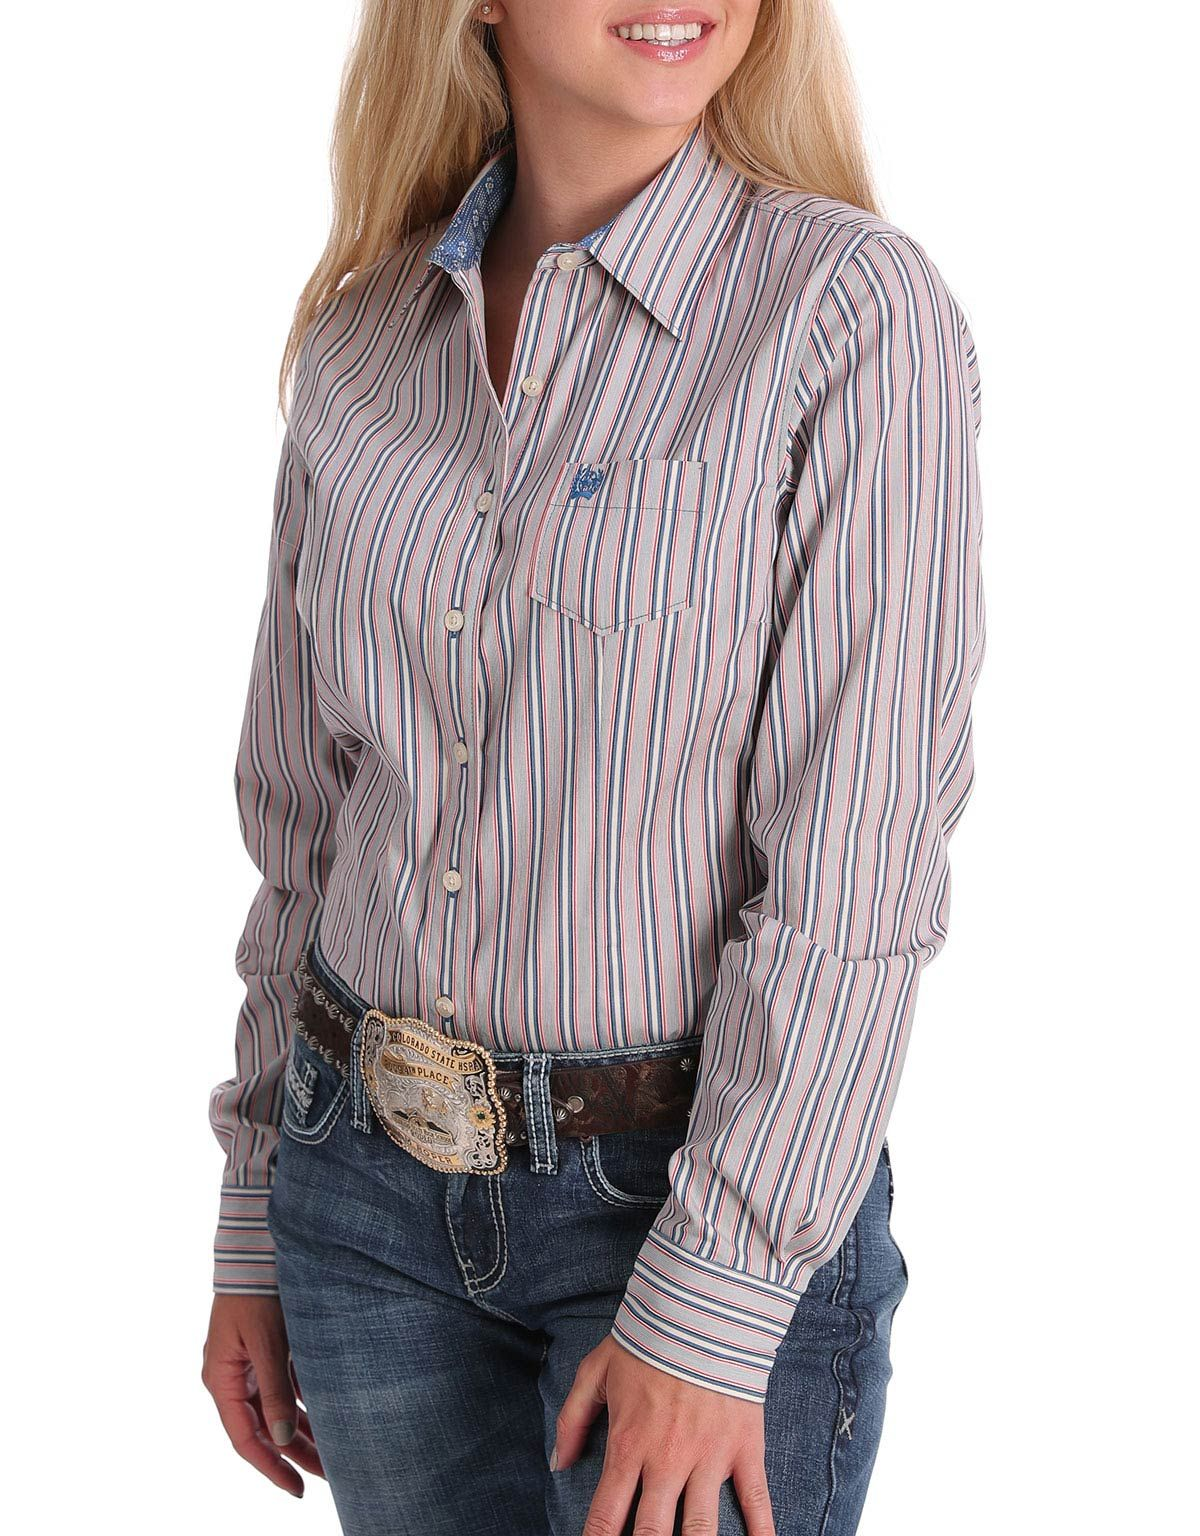 Cinch Women's Long Sleeve Stripe Button Down Shirt - Multi (Closeout)